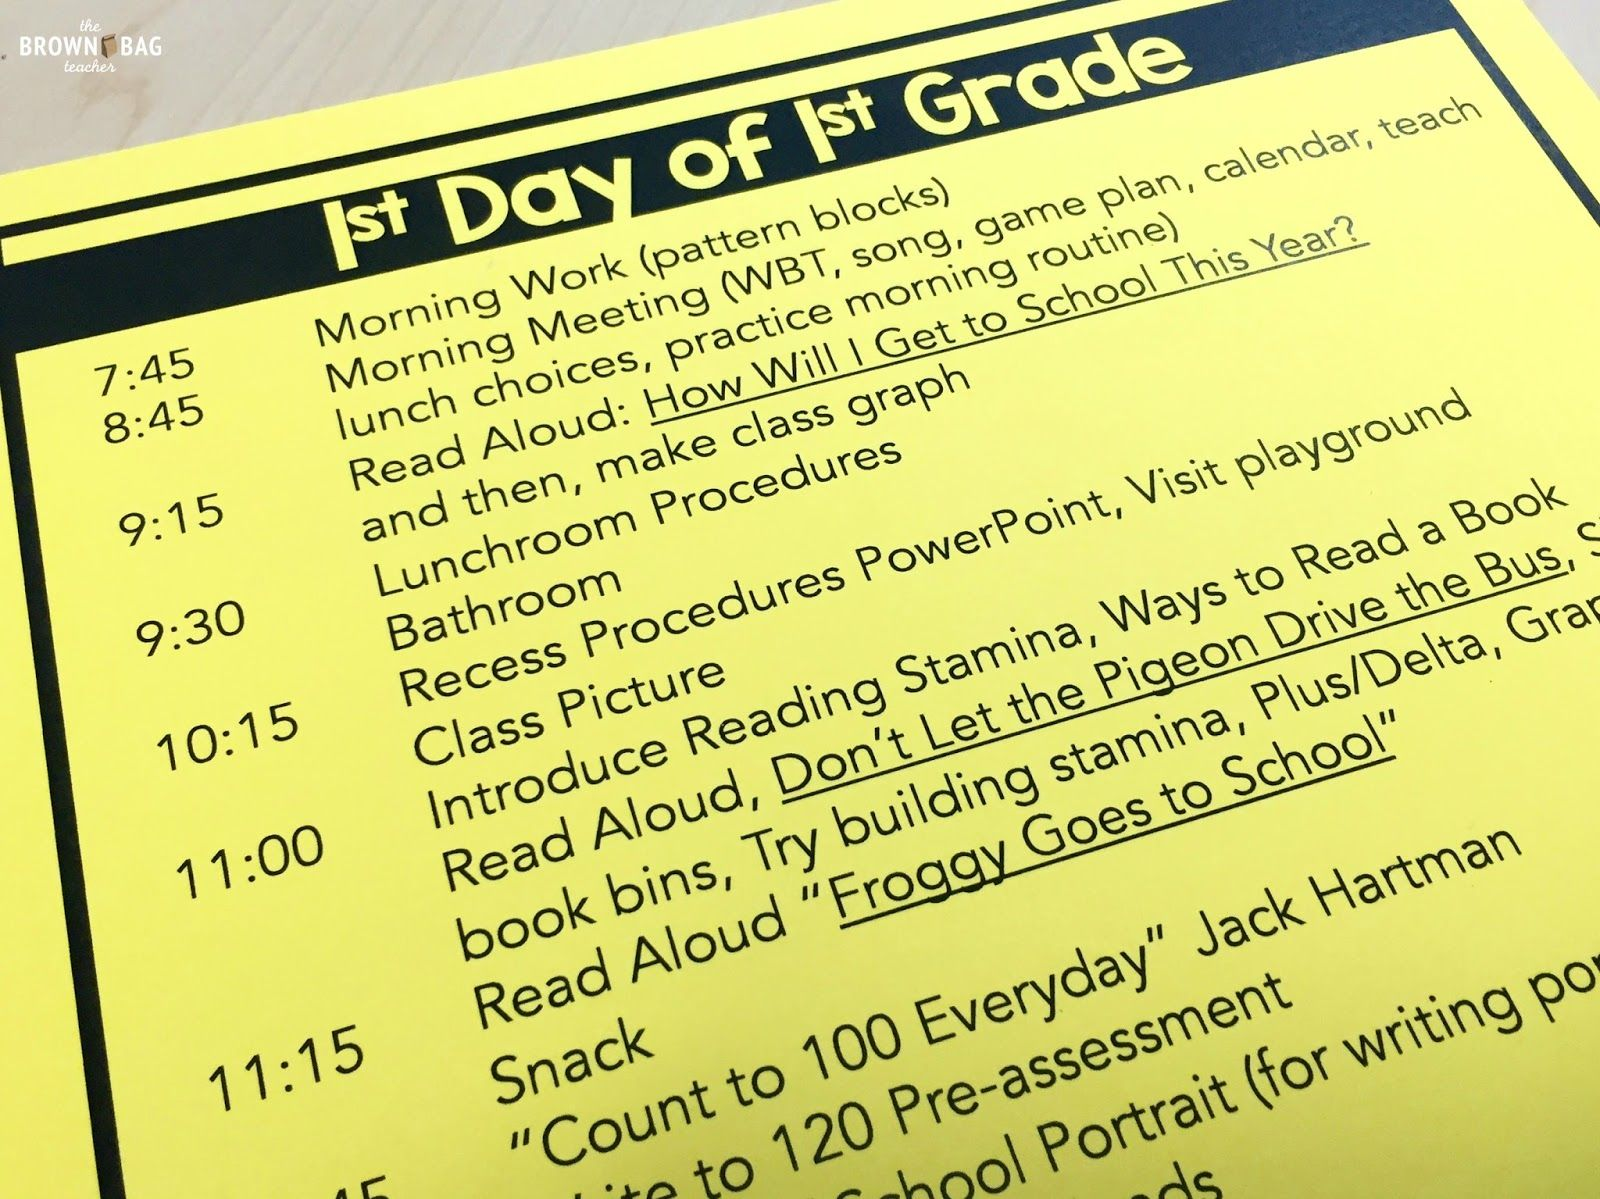 The First Day Of 1st Grade Free Lesson Plans And Activity